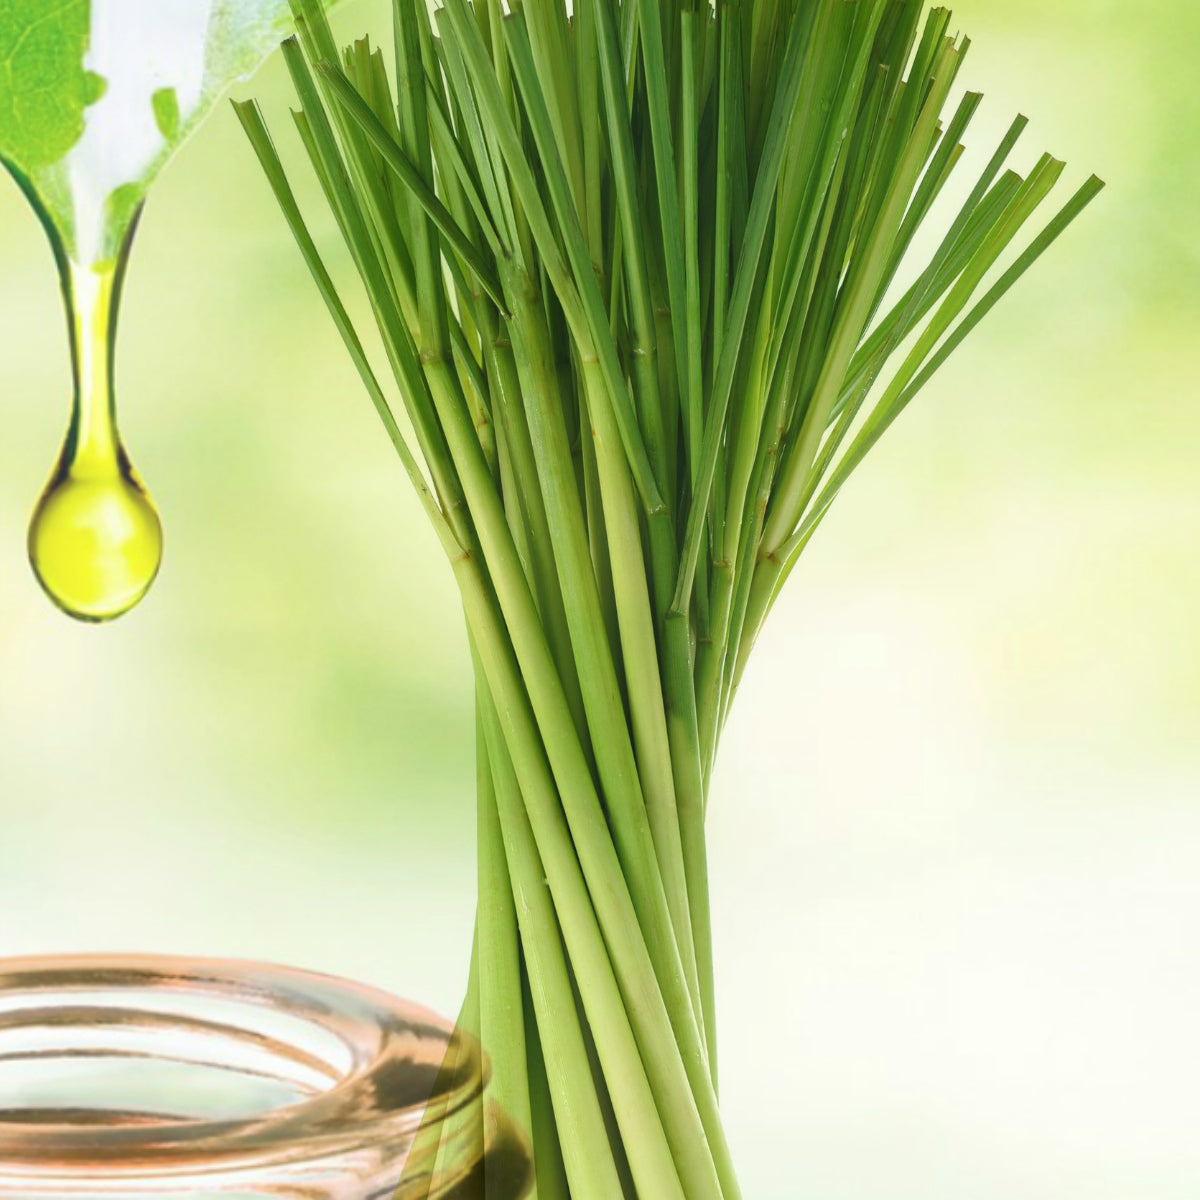 Seed Face Body Lip Care offers pure lemongrass essential oils